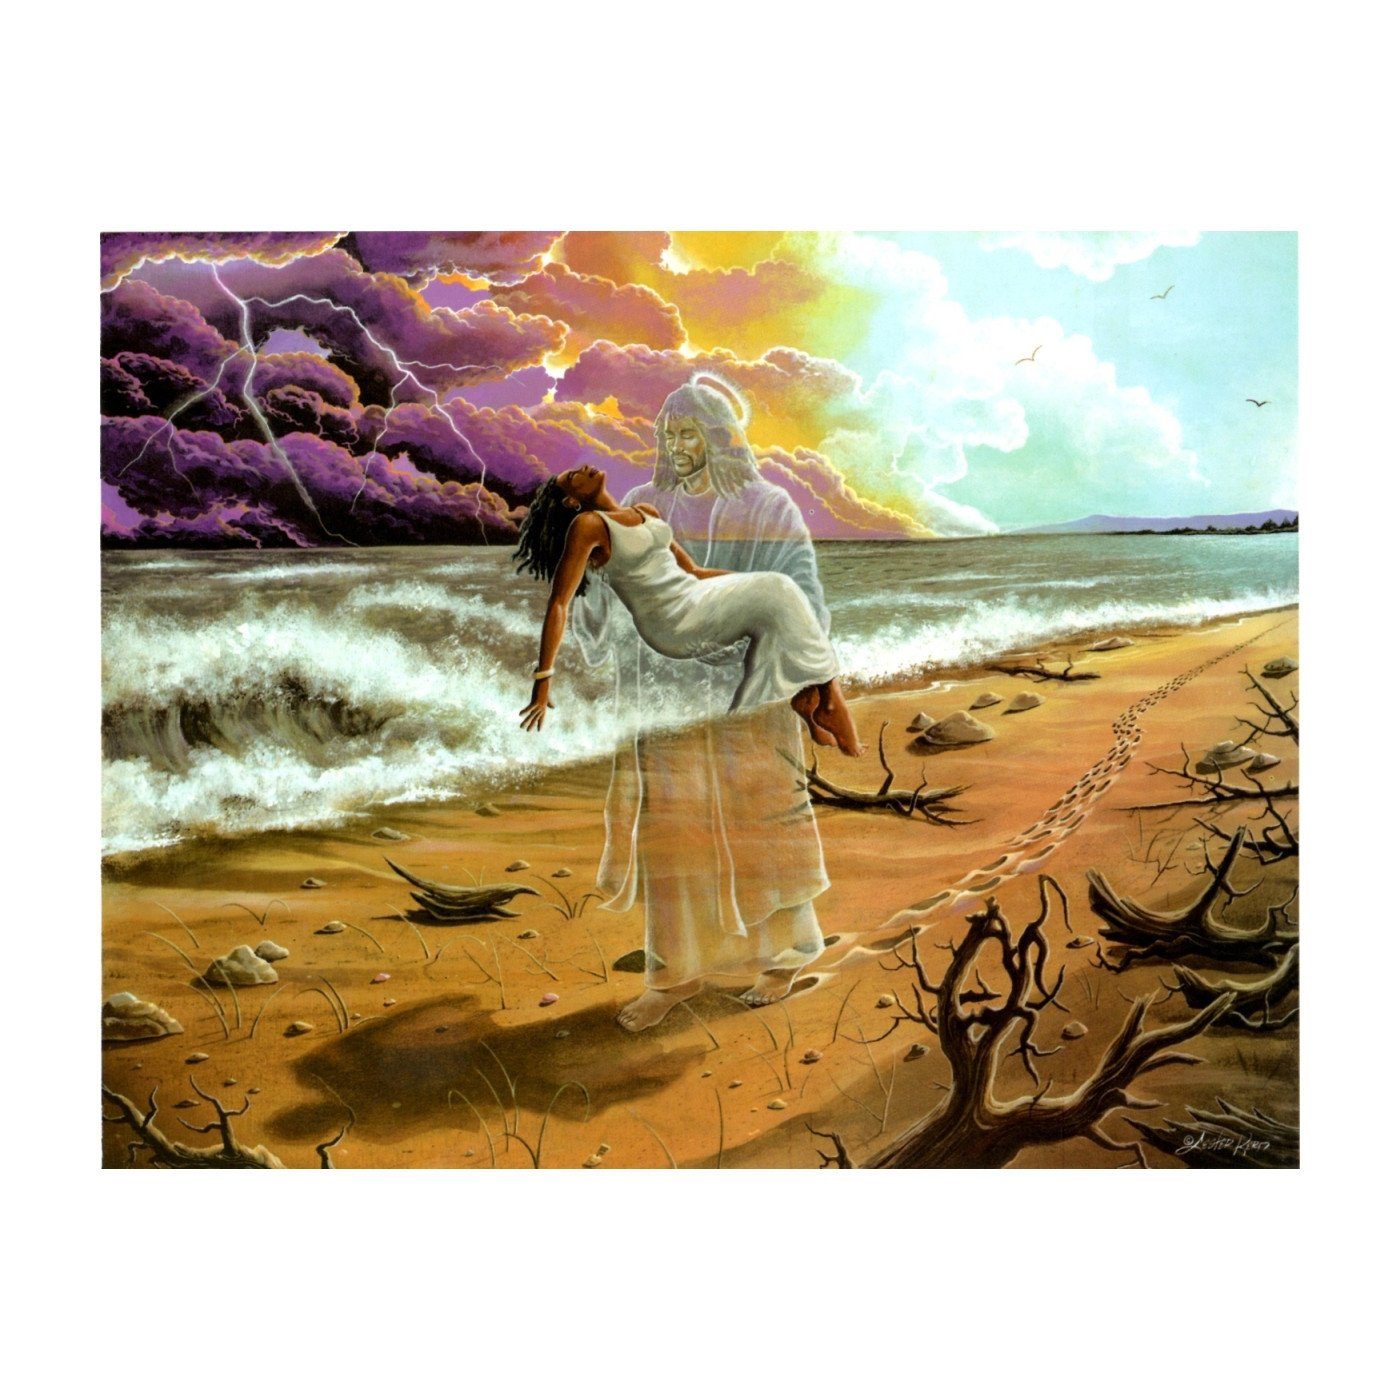 Footprints in the Sand (Female) by Lester Kern (Black Jesus)